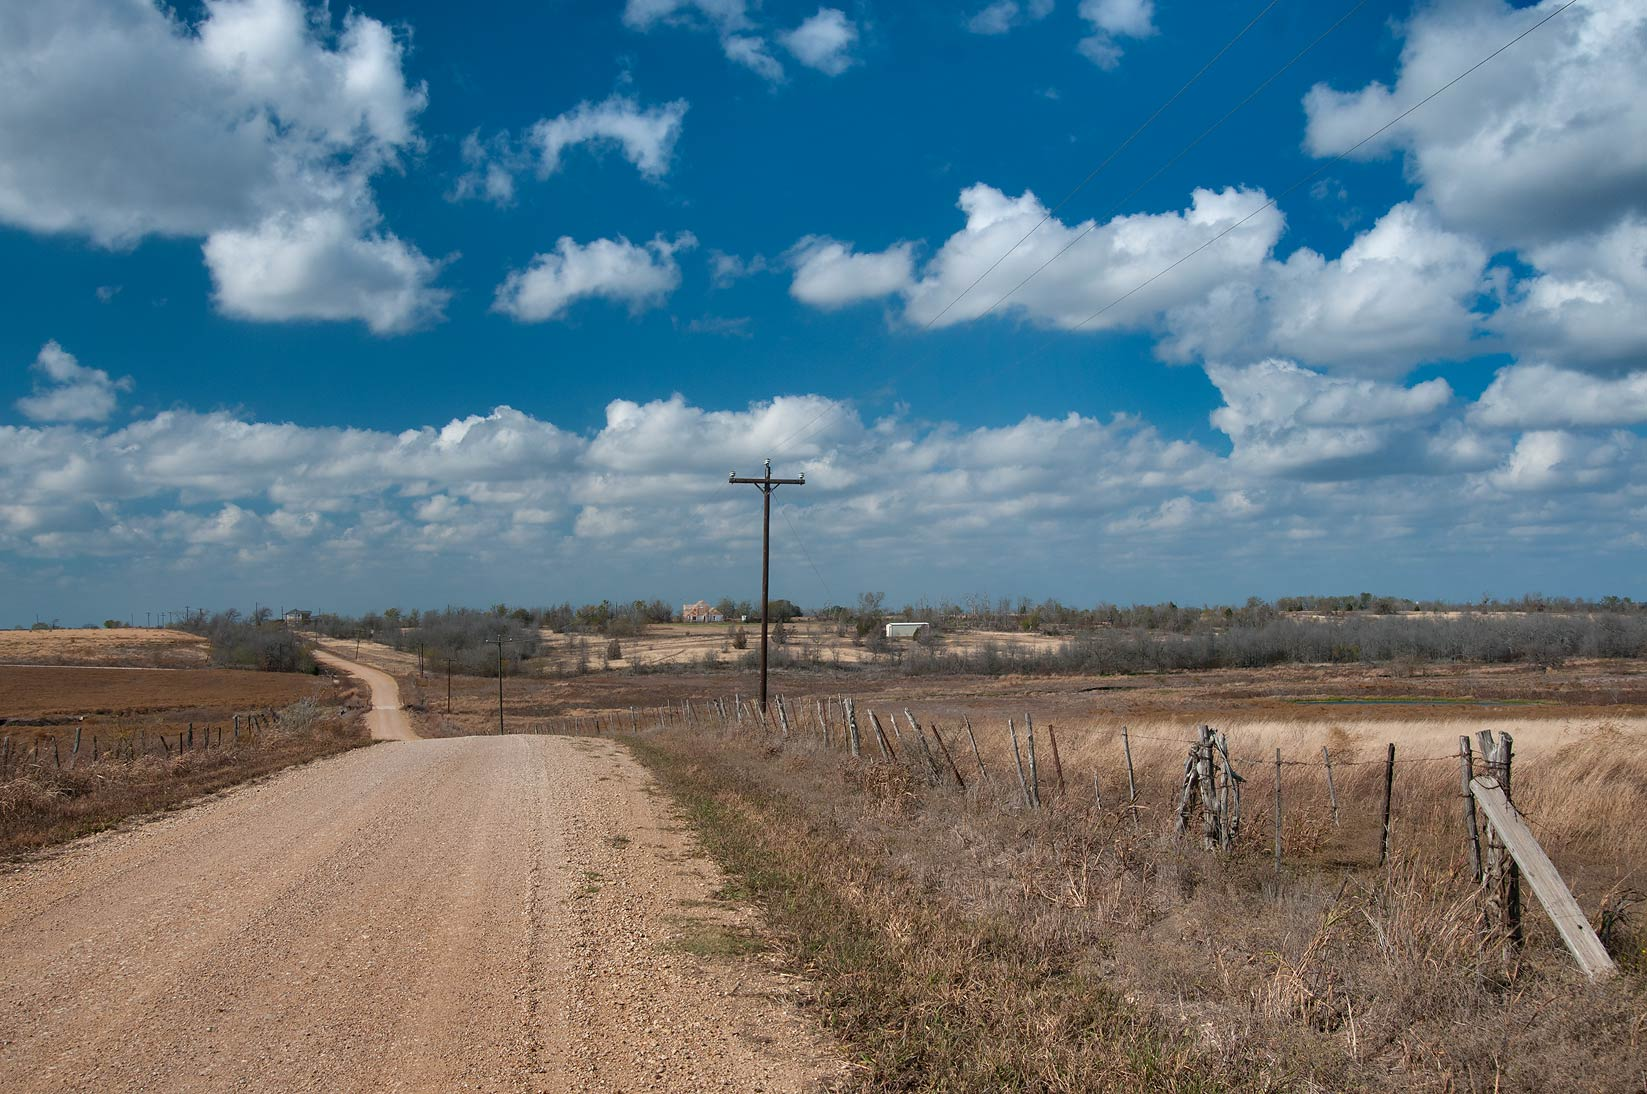 College Station-Bryant Station, Texas  - County Rd. 112 near Buckholts. Texas